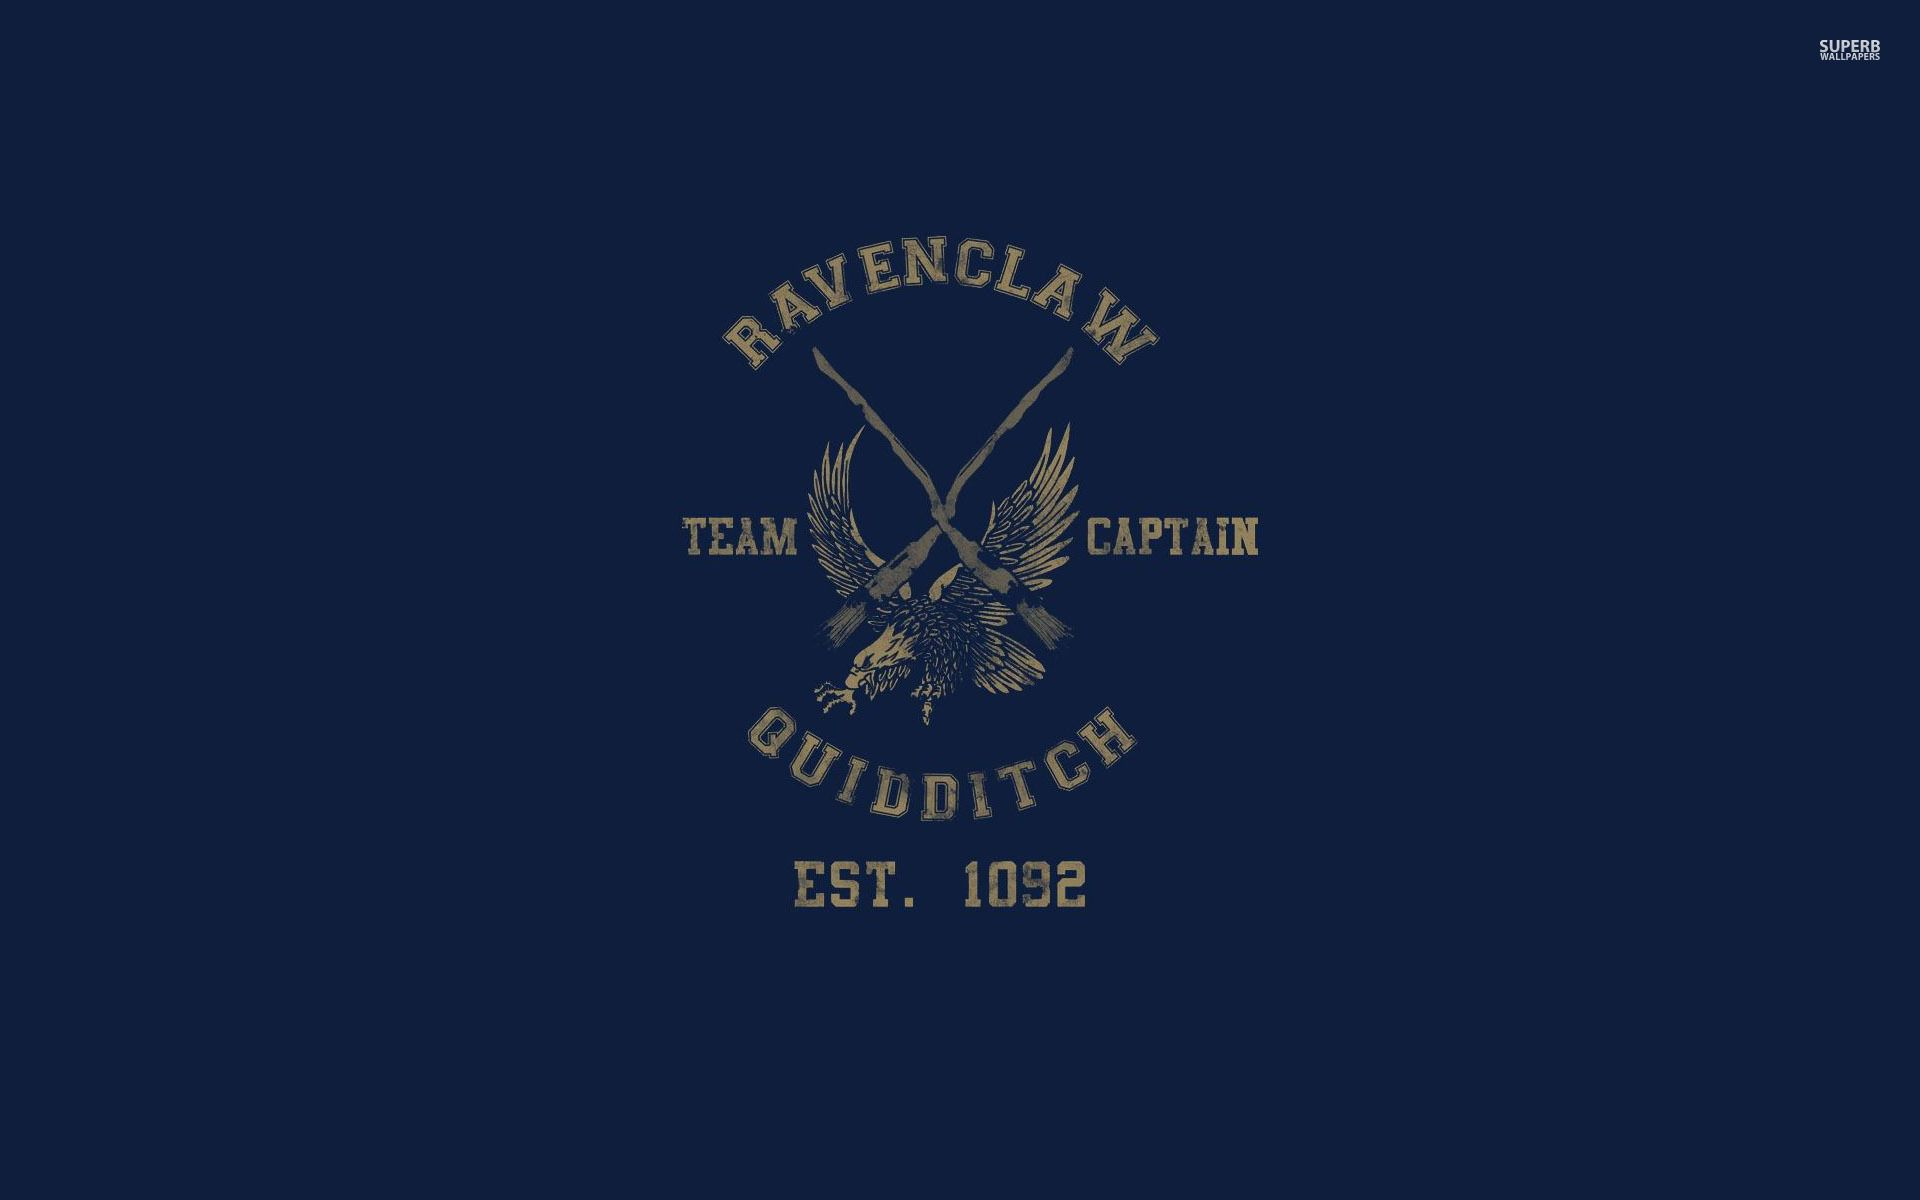 Ravenclaw Wallpaper Hd Harry Potter Wallpaper Ravenclaw Ravenclaw Quidditch